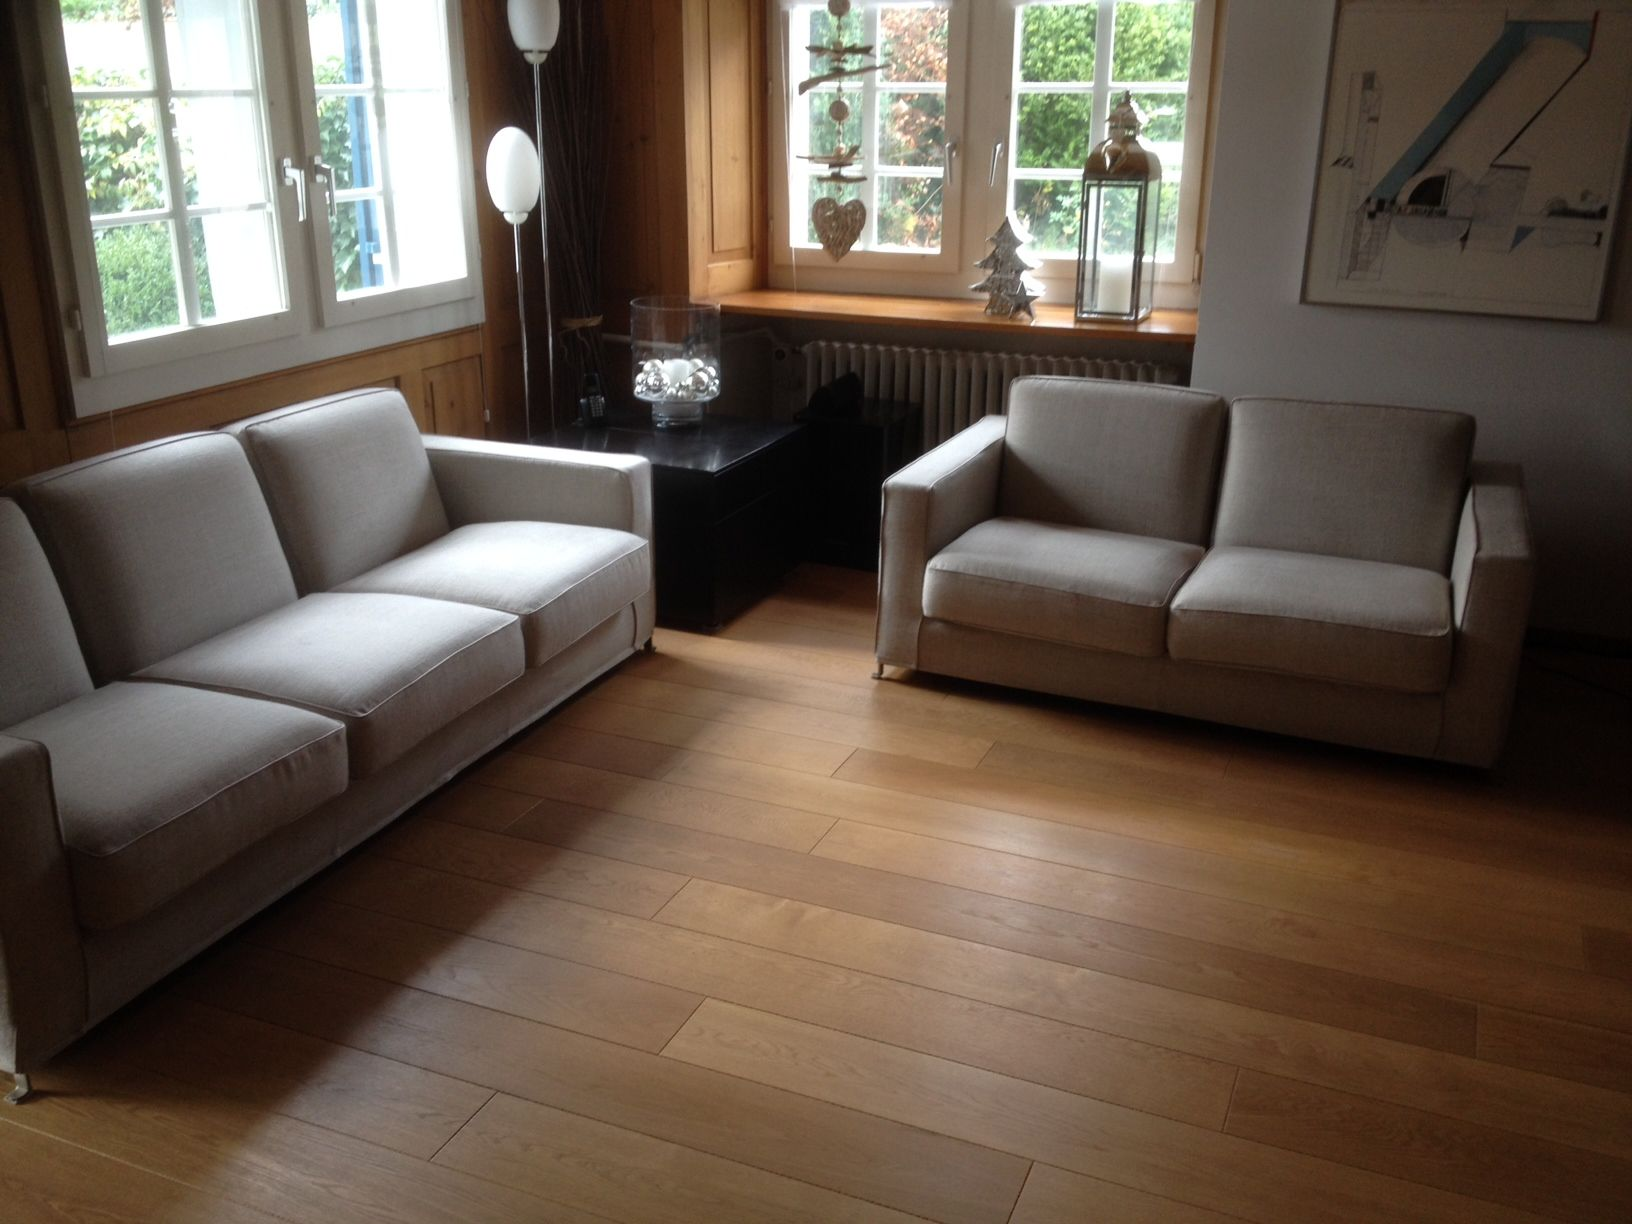 Matteoli Mobili ~ 55 best #myflexform images on pinterest alps armchairs and bologna